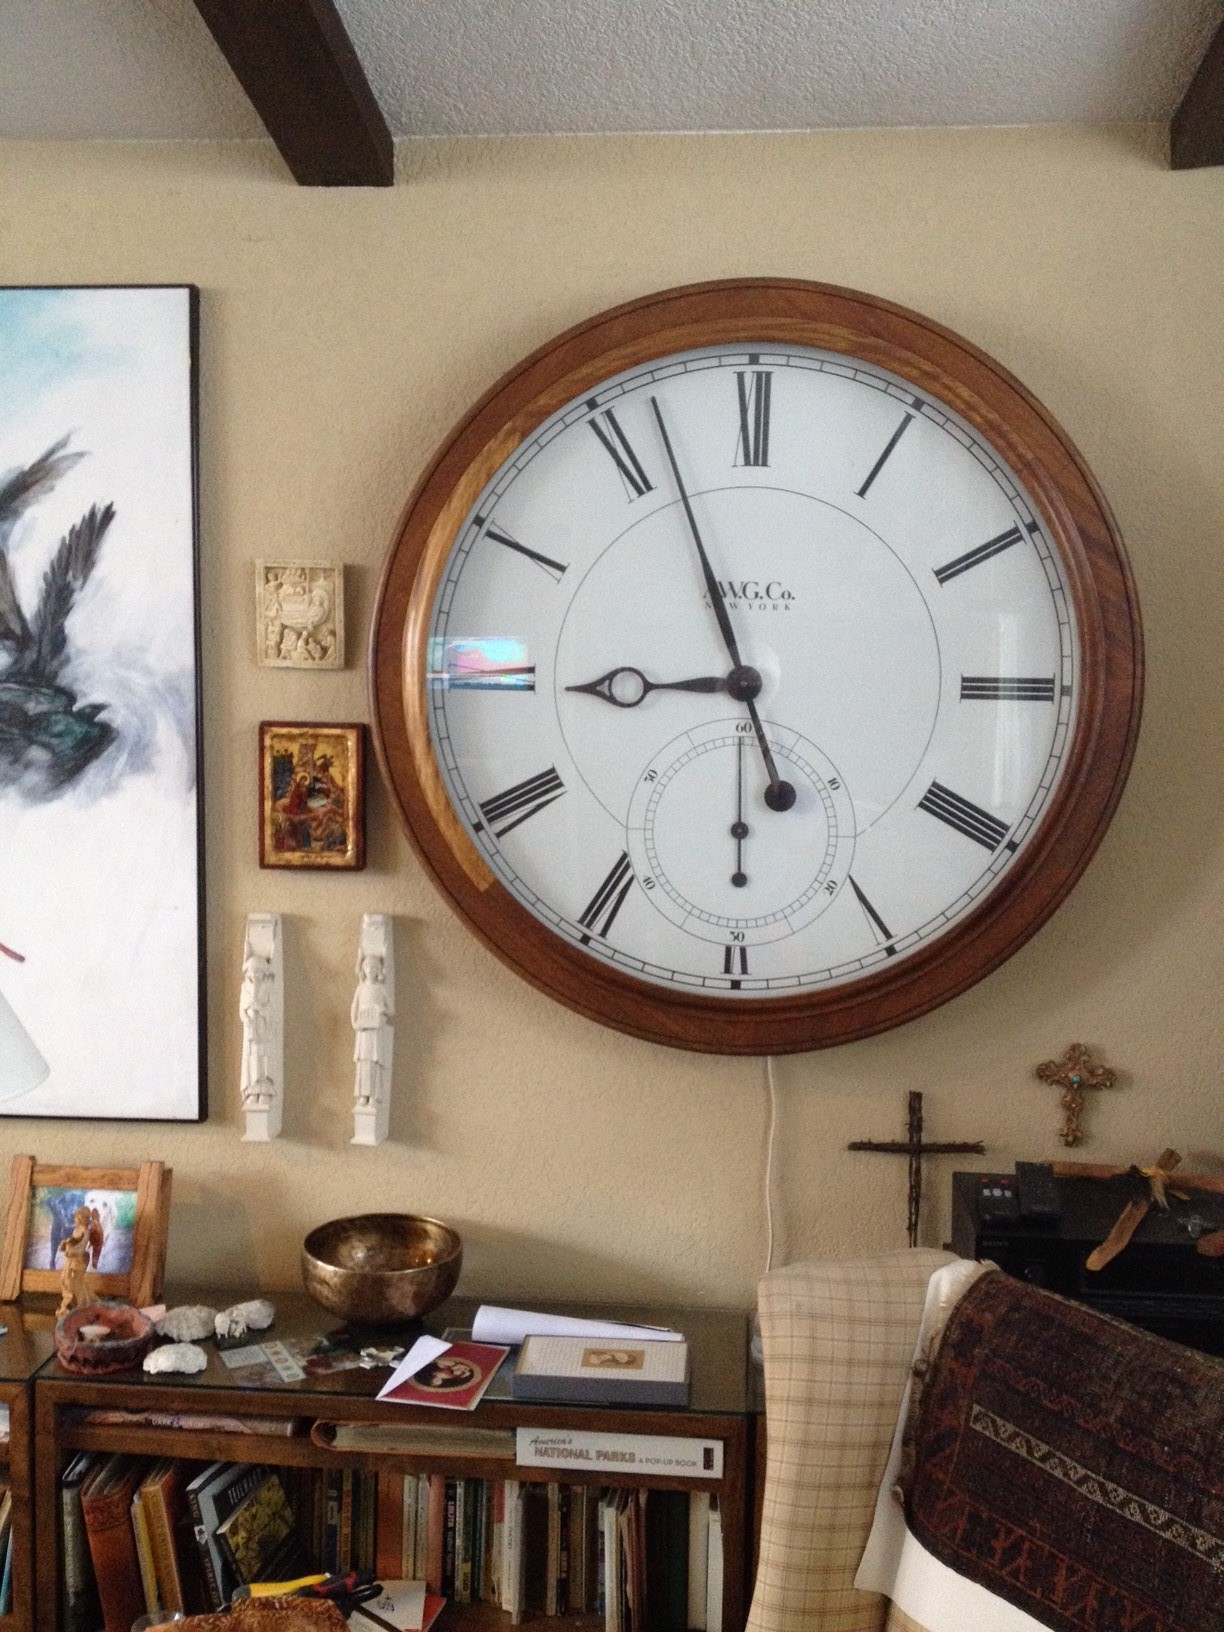 The Brian Gilliam clock at my parents house.